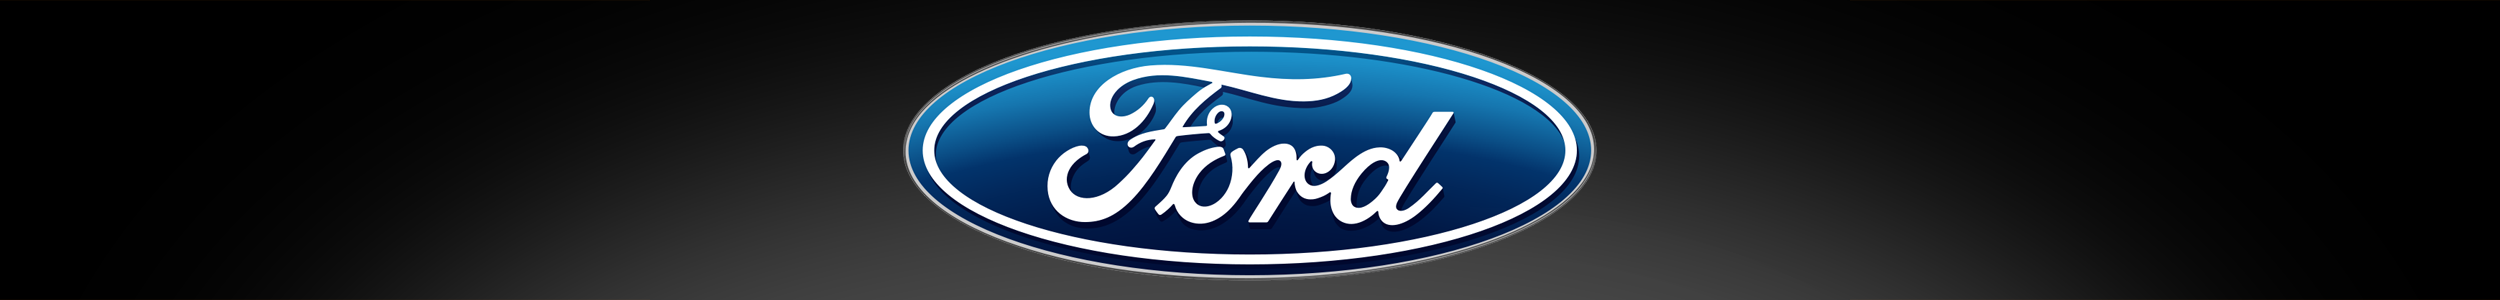 MB Lock & Key Auto Locksmiths | Ford Car Keys - Reprogrammed or Replaced in Norwich, Norfolk